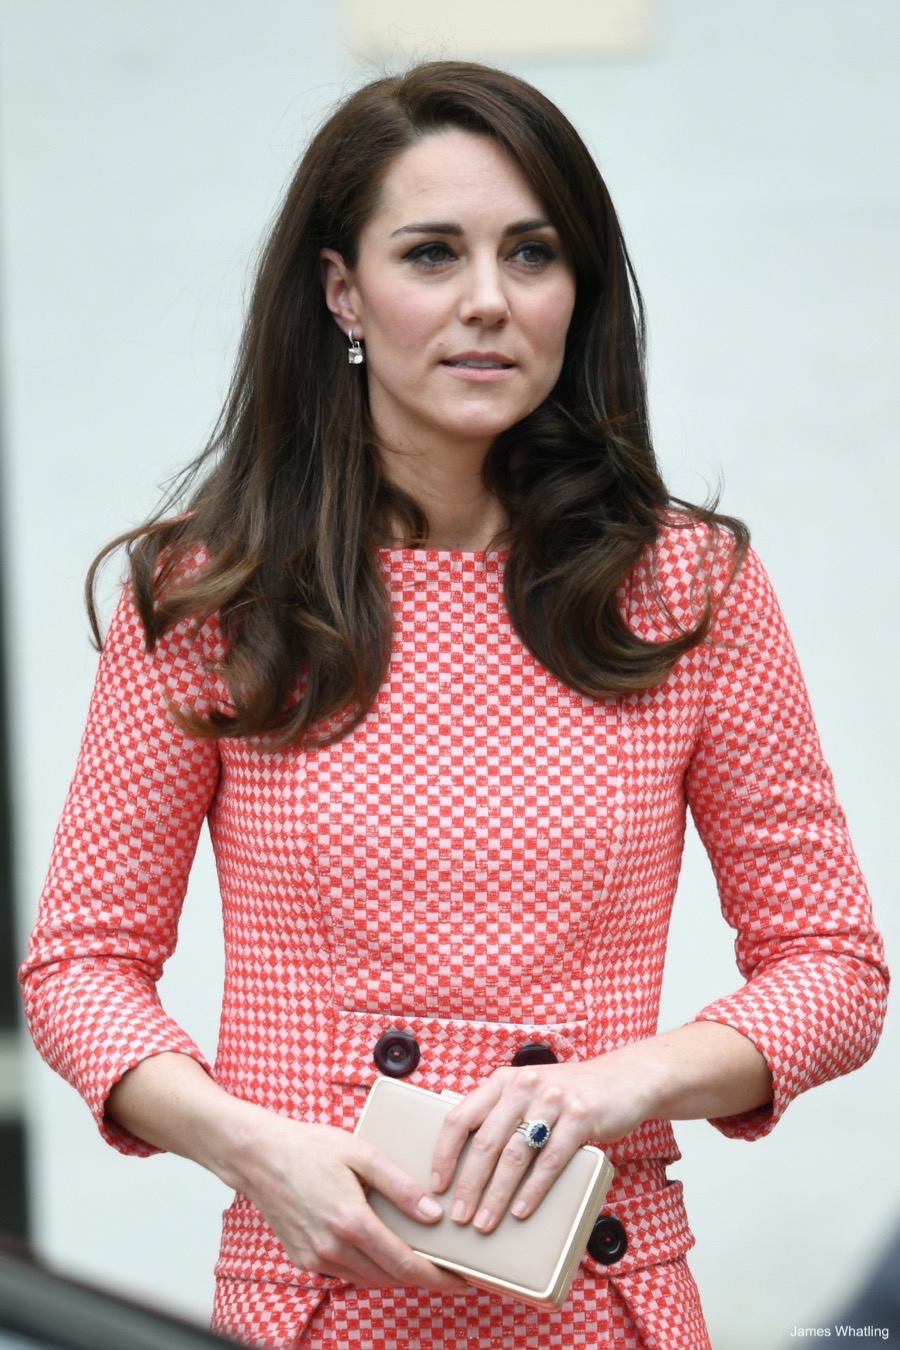 Kate Middleton engagement ring: replica of the sapphire diamond ring